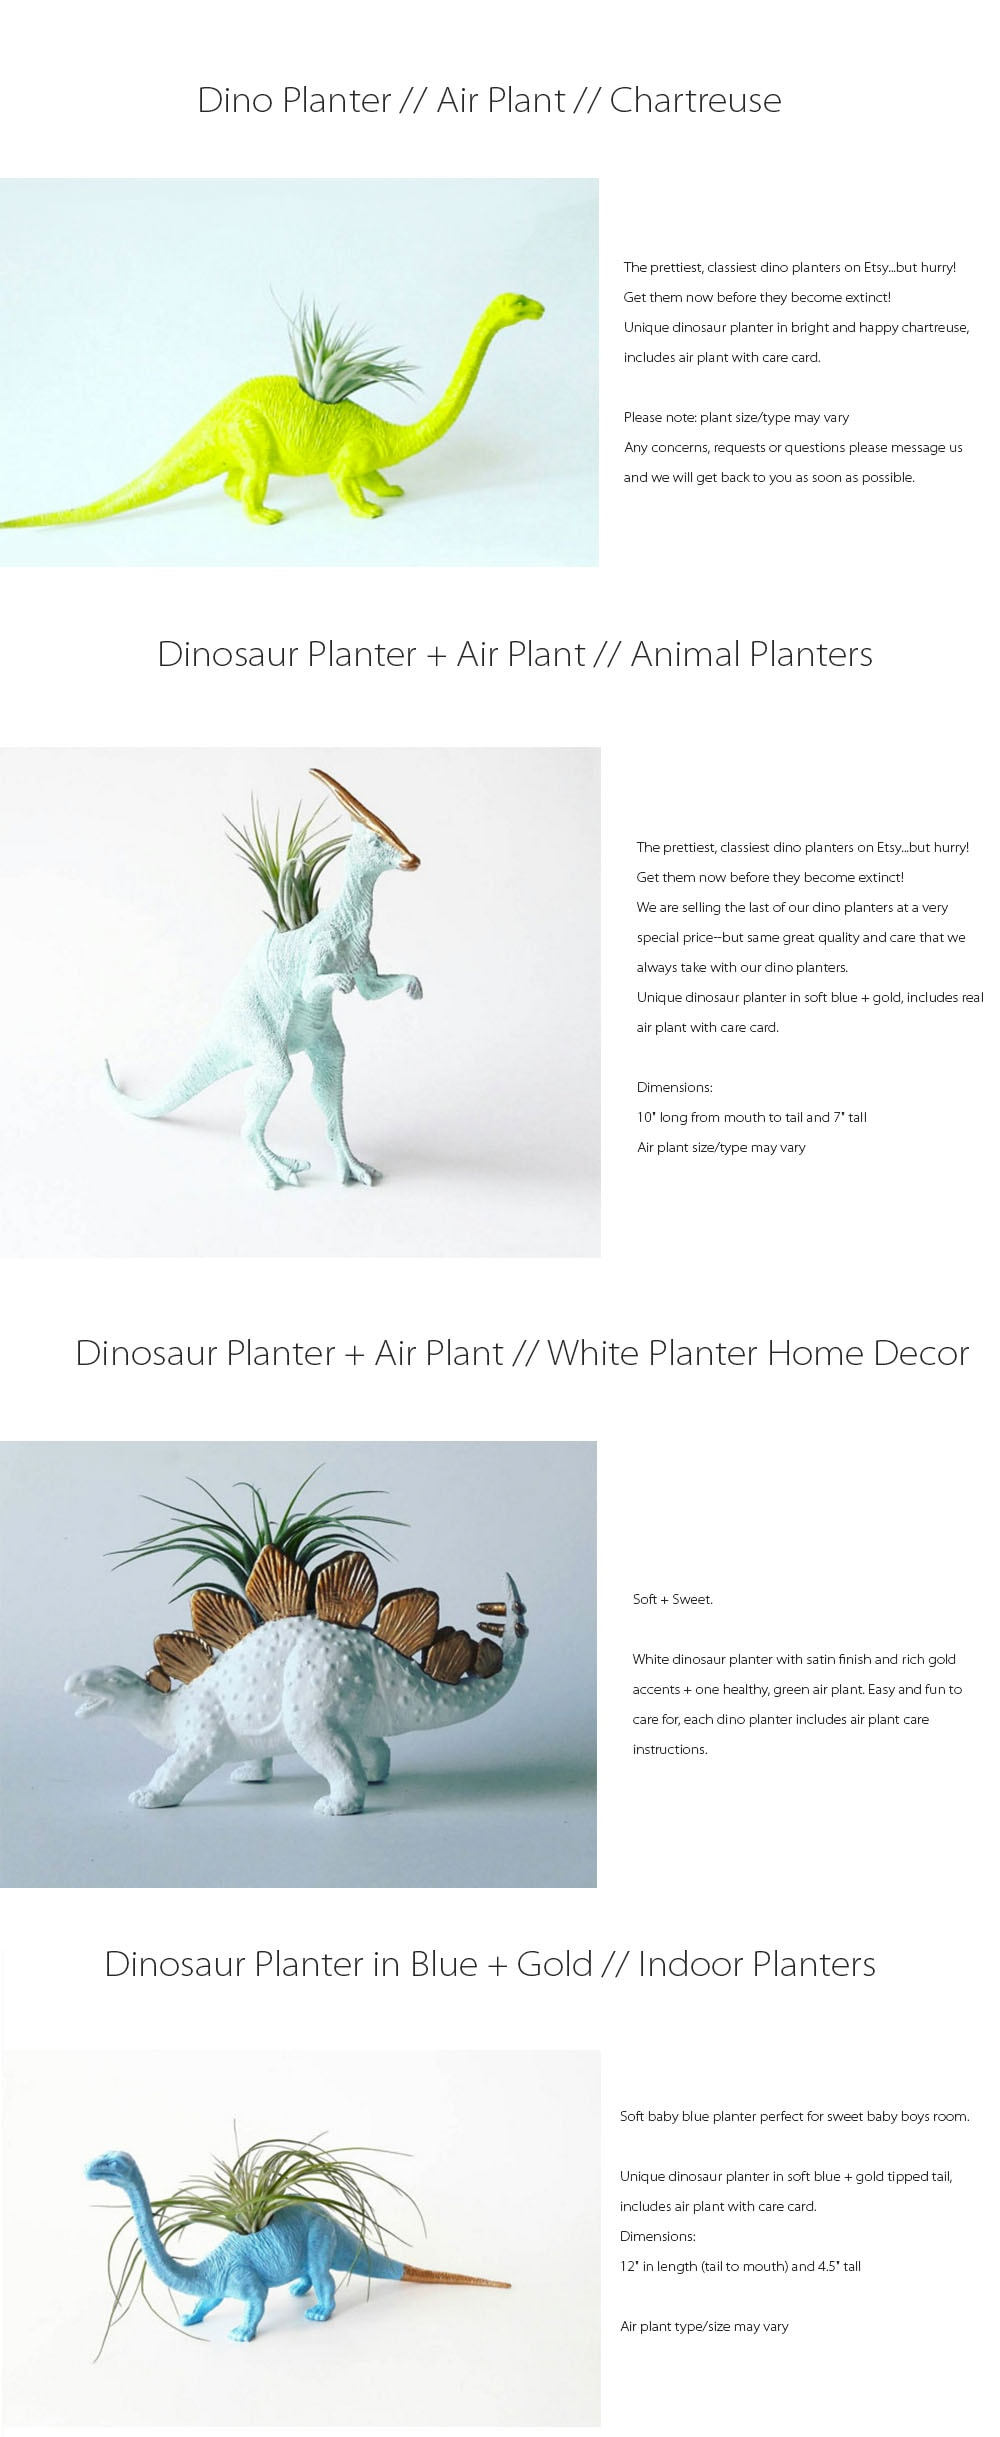 Dinosaur Planter And Air Plant Get Them Now Before They Become Extinct!